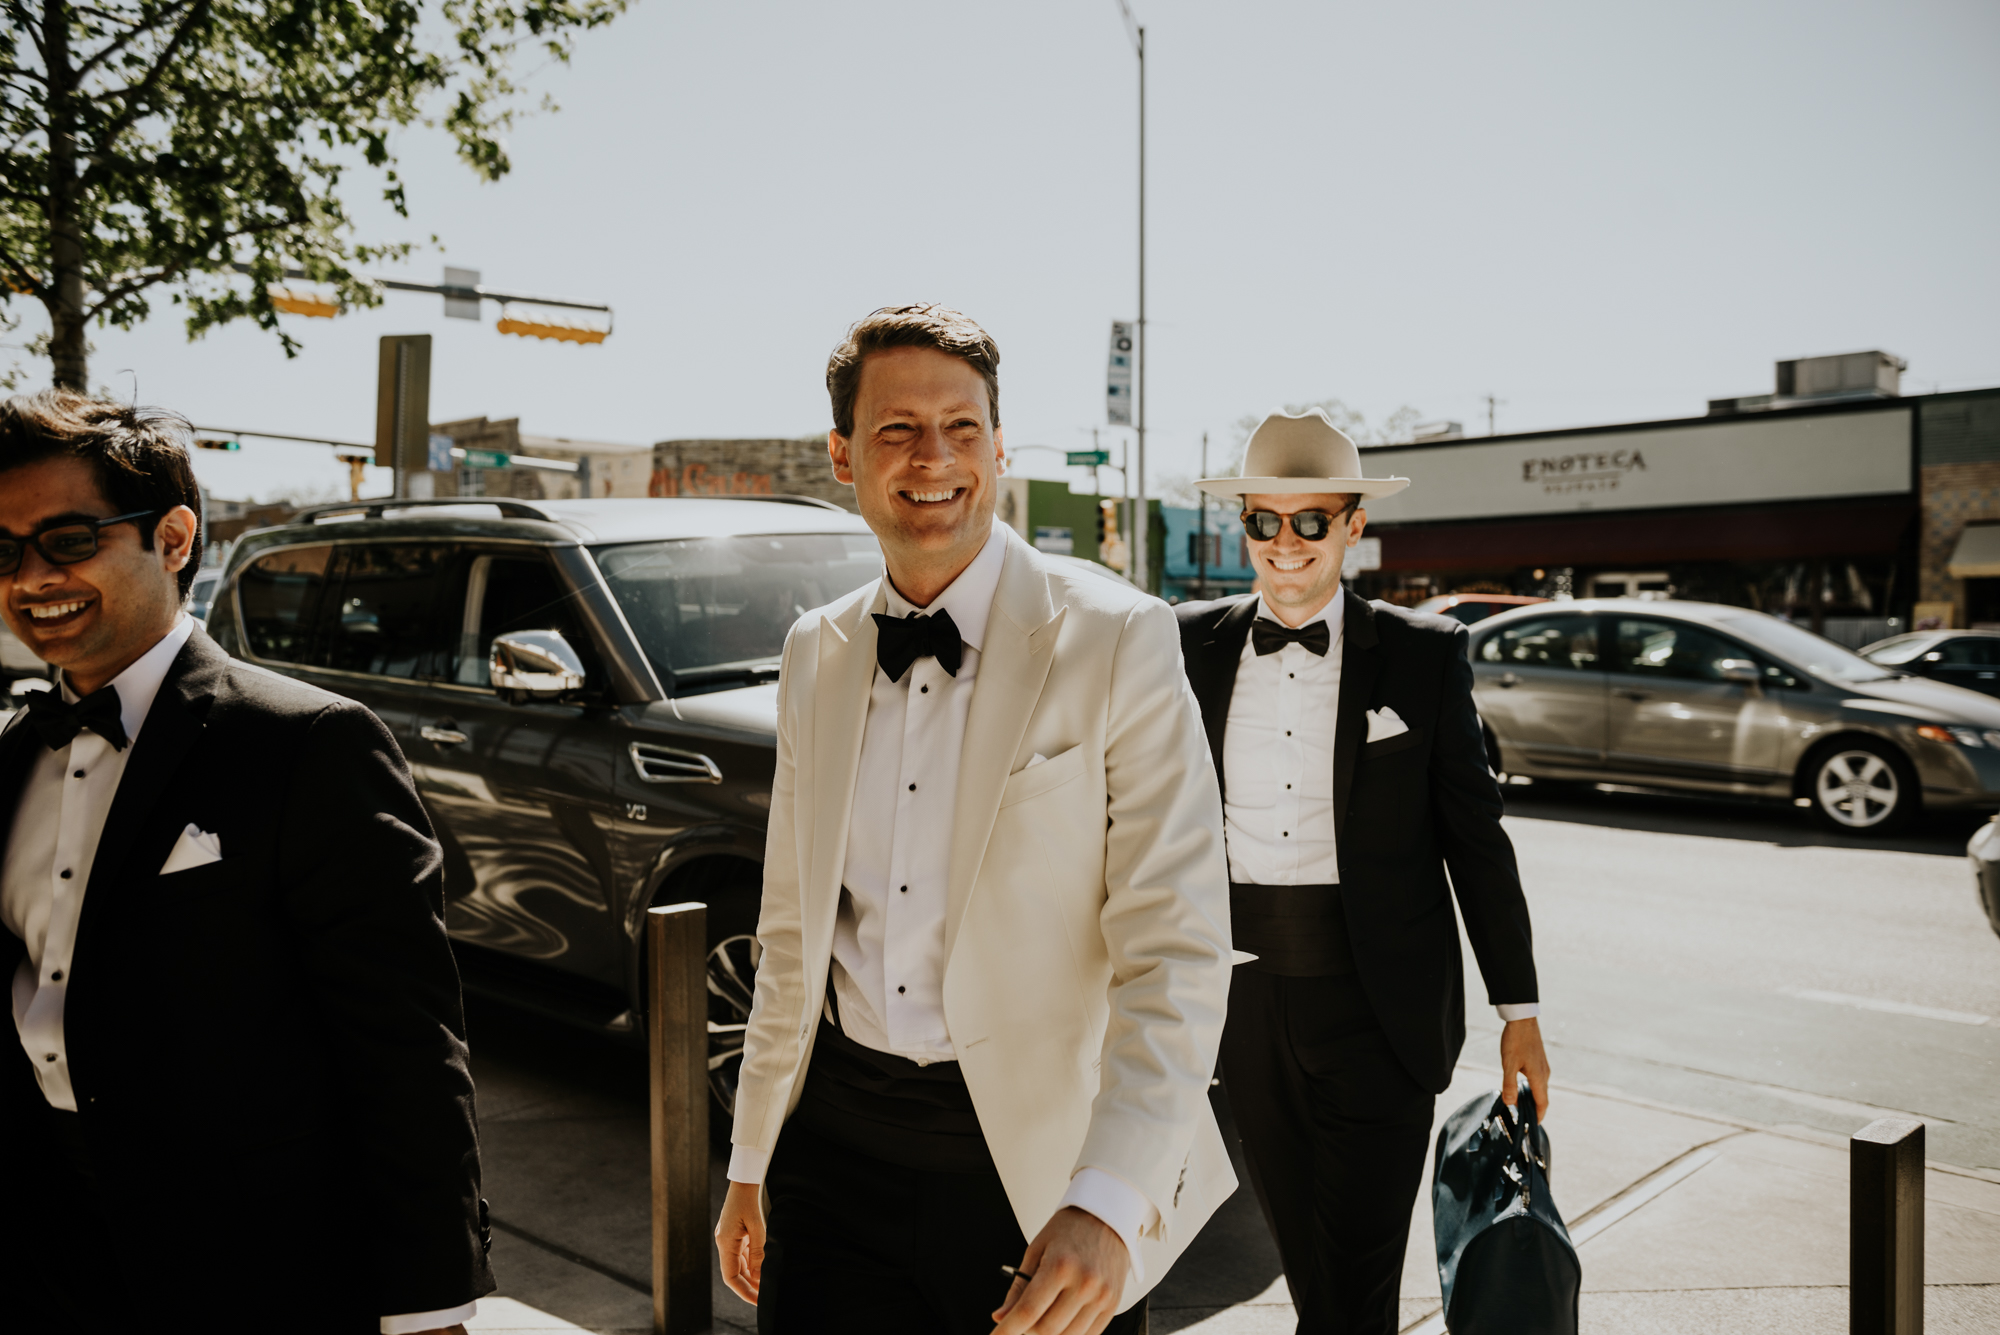 Groom and friends during an Intimate Wedding at South Congress Hotel in Austin, Texas